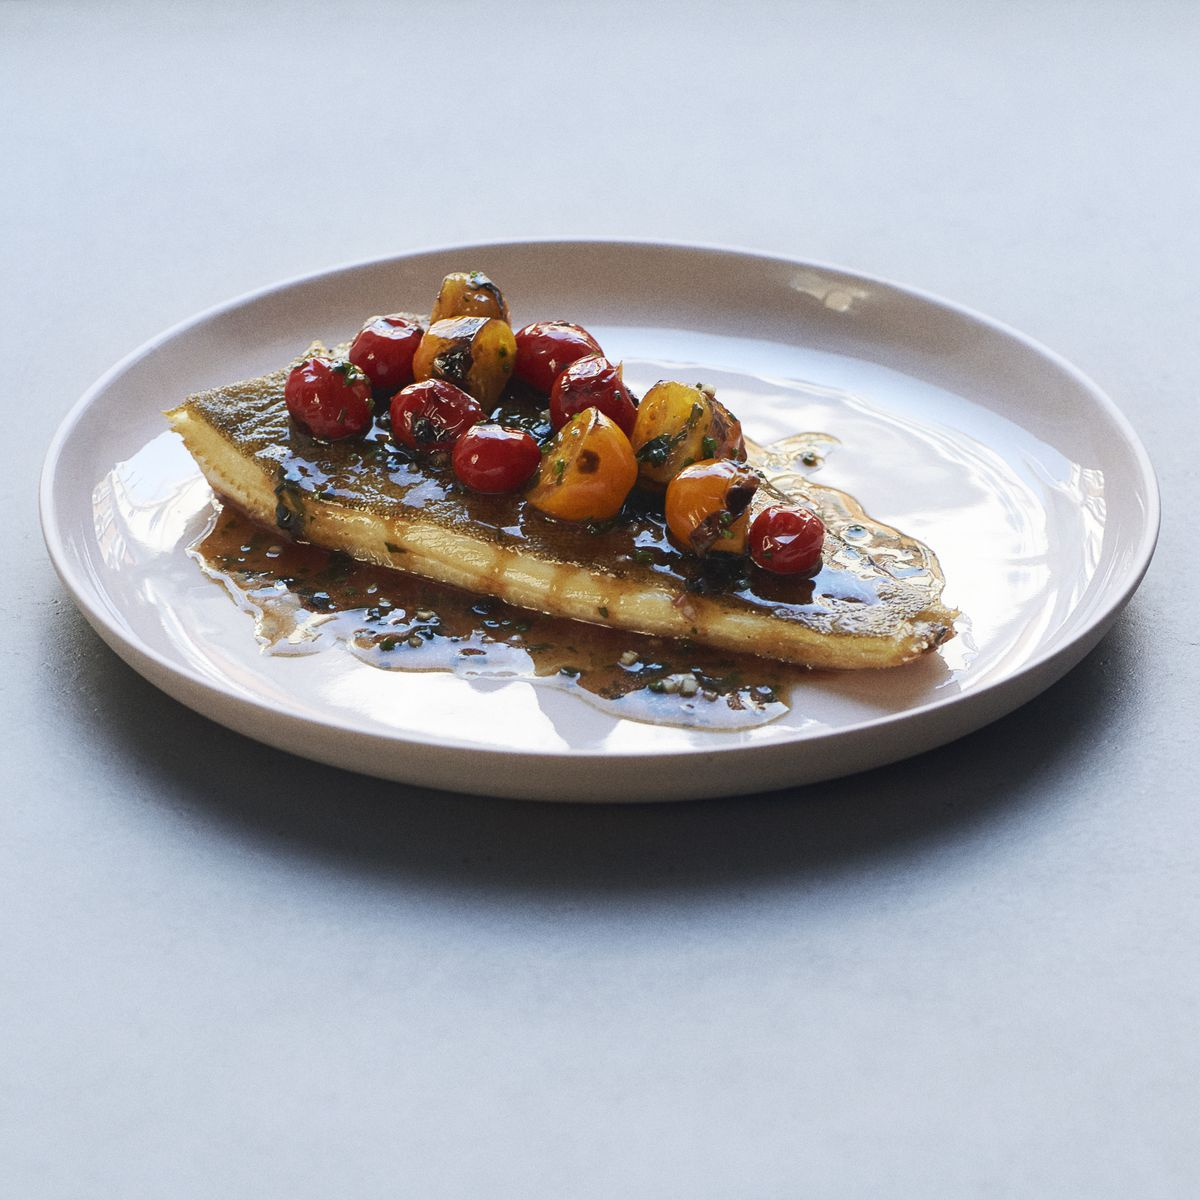 A mackerel and tomato dish at Two Lights, the new London restaurant from the Michelin Star and World's 50 Best Shoreditch restaurant, The Clove Club